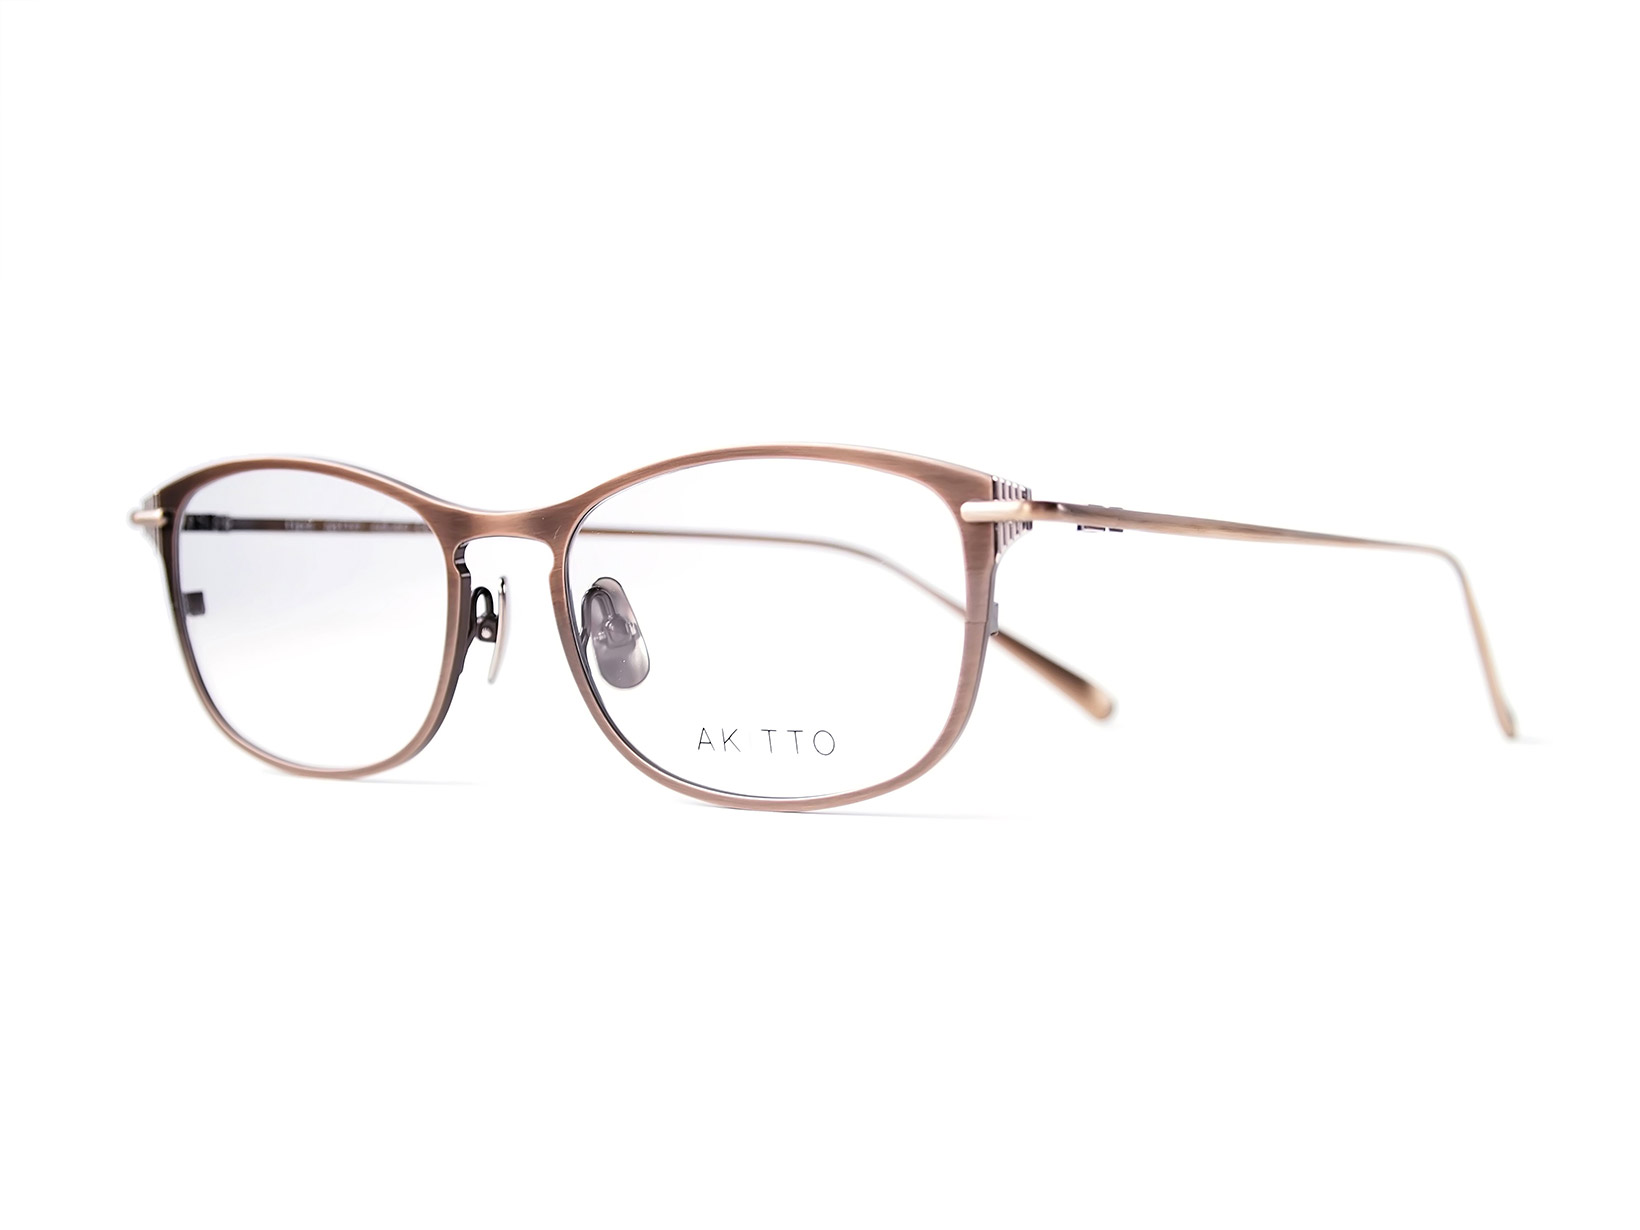 AKITTO 2016-3rd tip2 color AG size:53□17 material:titanium price:44,500-(+tax)